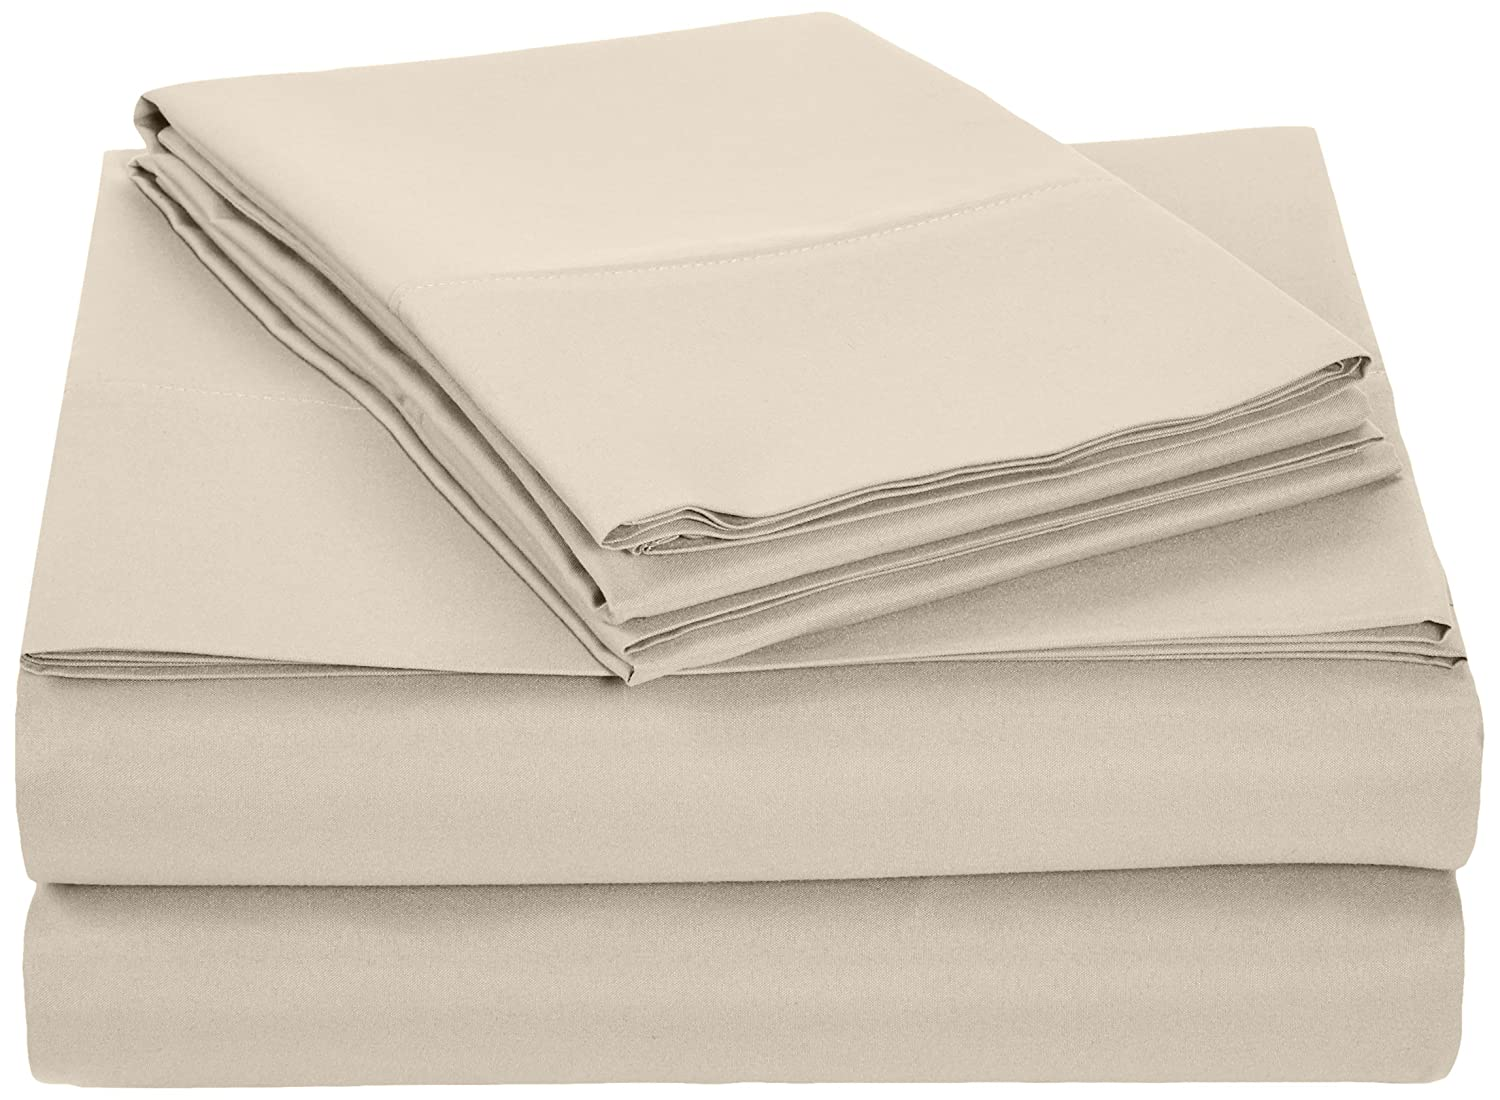 AmazonBasics Microfiber Sheet Set - Full, Beige